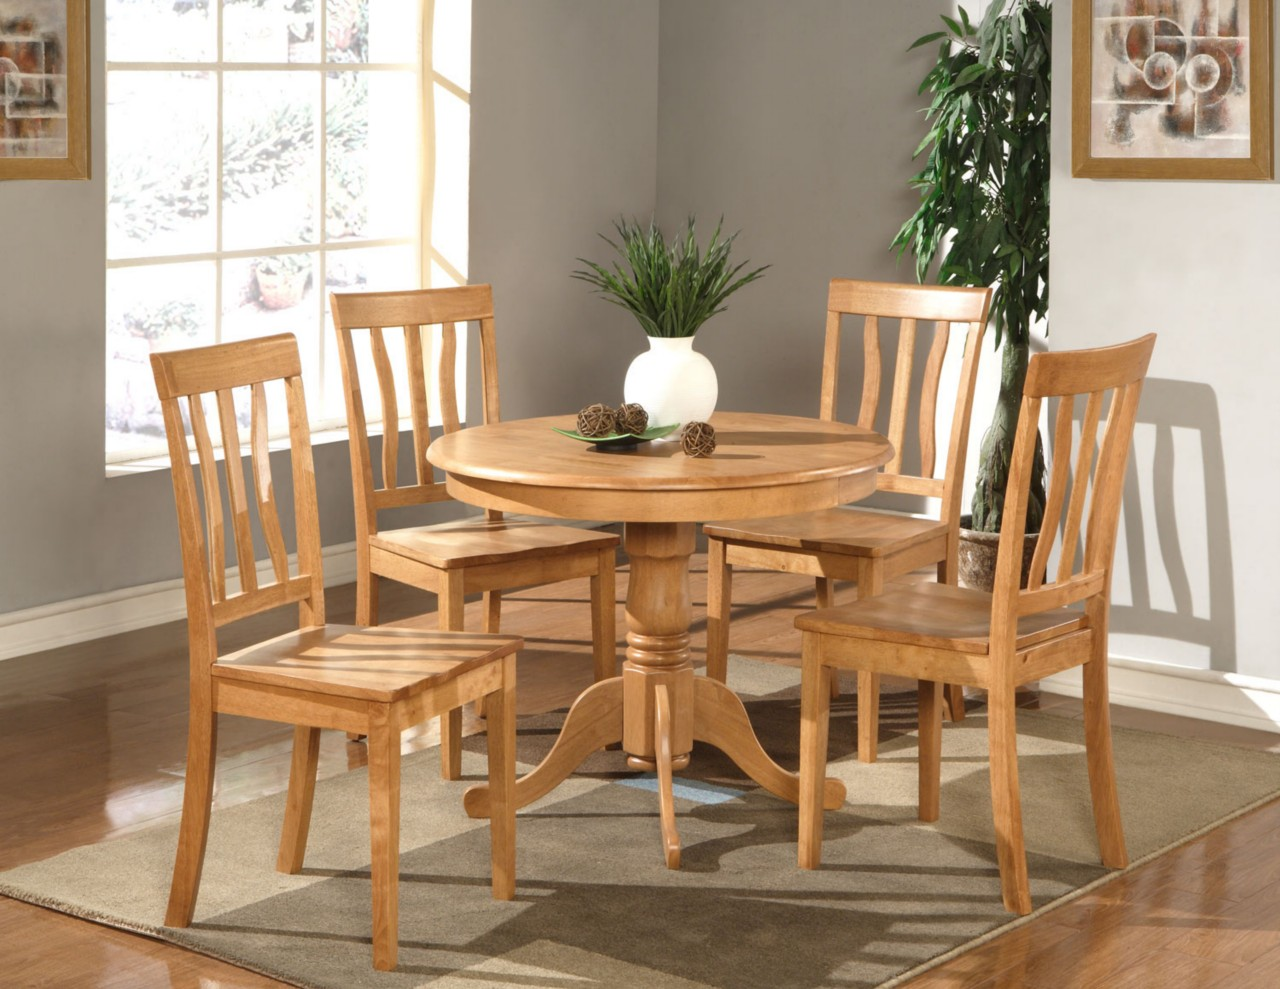 5 PC DINETTE KITCHEN ROUND TABLE with 4 WOOD SEAT CHAIRS IN OAK FINISH 36quo